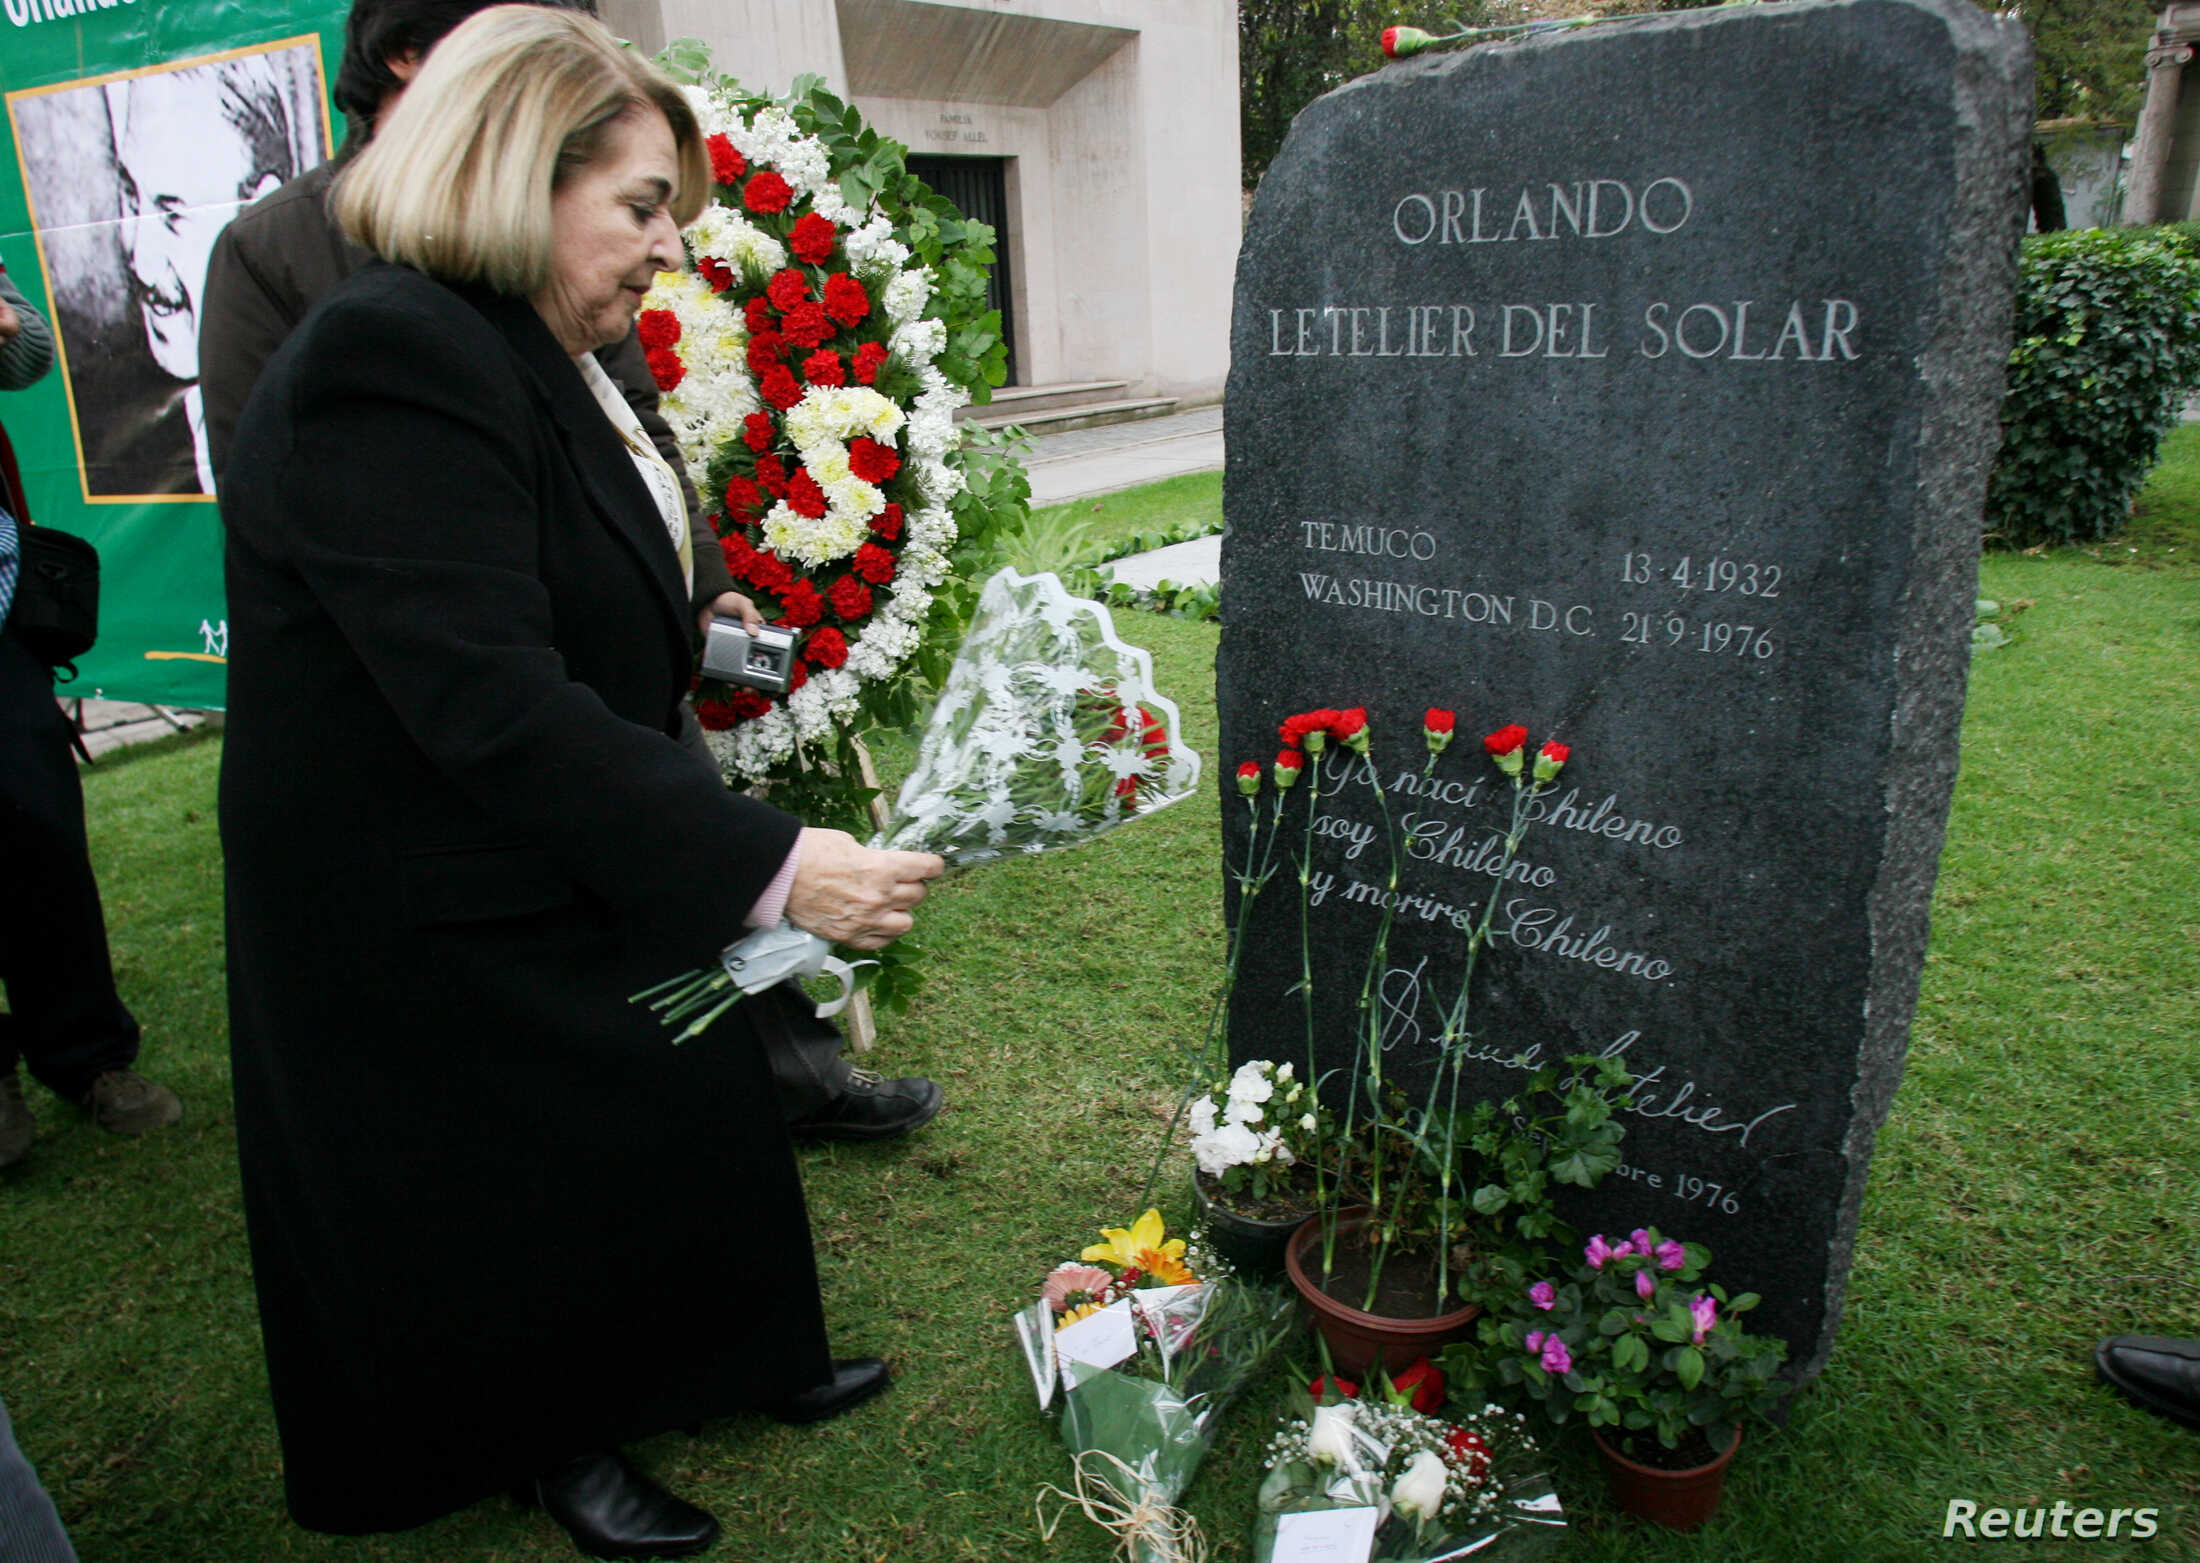 Isabel Morel, the widow of Orlando Letelier, a former Foreign Minister of Salvador Allende Government, who was killed when his car exploded 30 years ago in Washington in 1976, puts flowers on Letelier's grave in Santiago, Sept. 21, 2006.